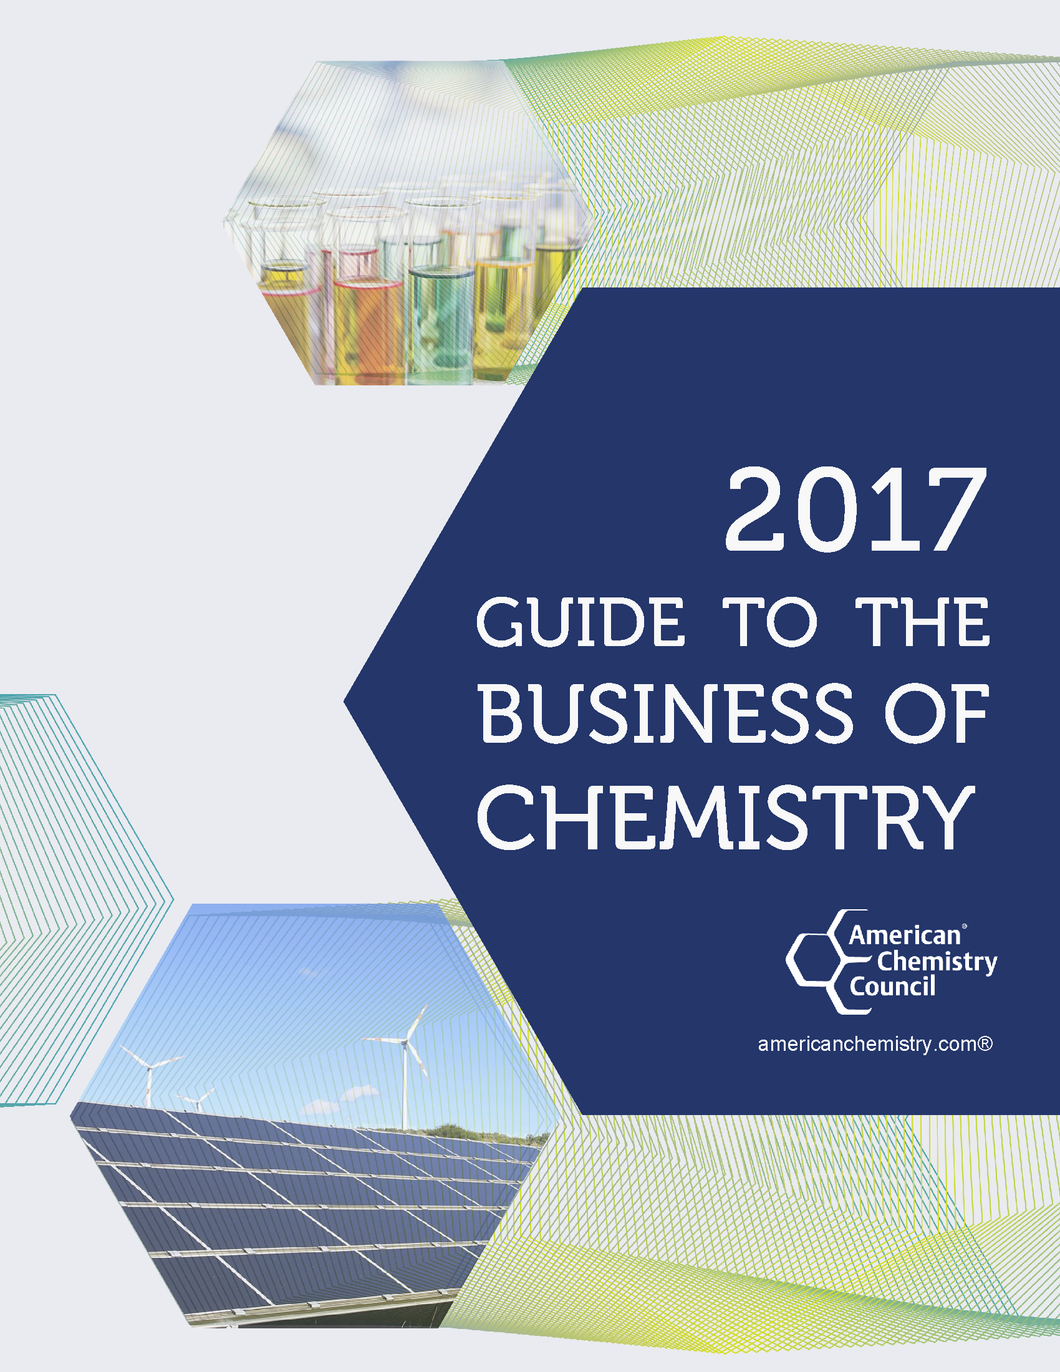 Guide to the Business of Chemistry - 2017 (electronic version)